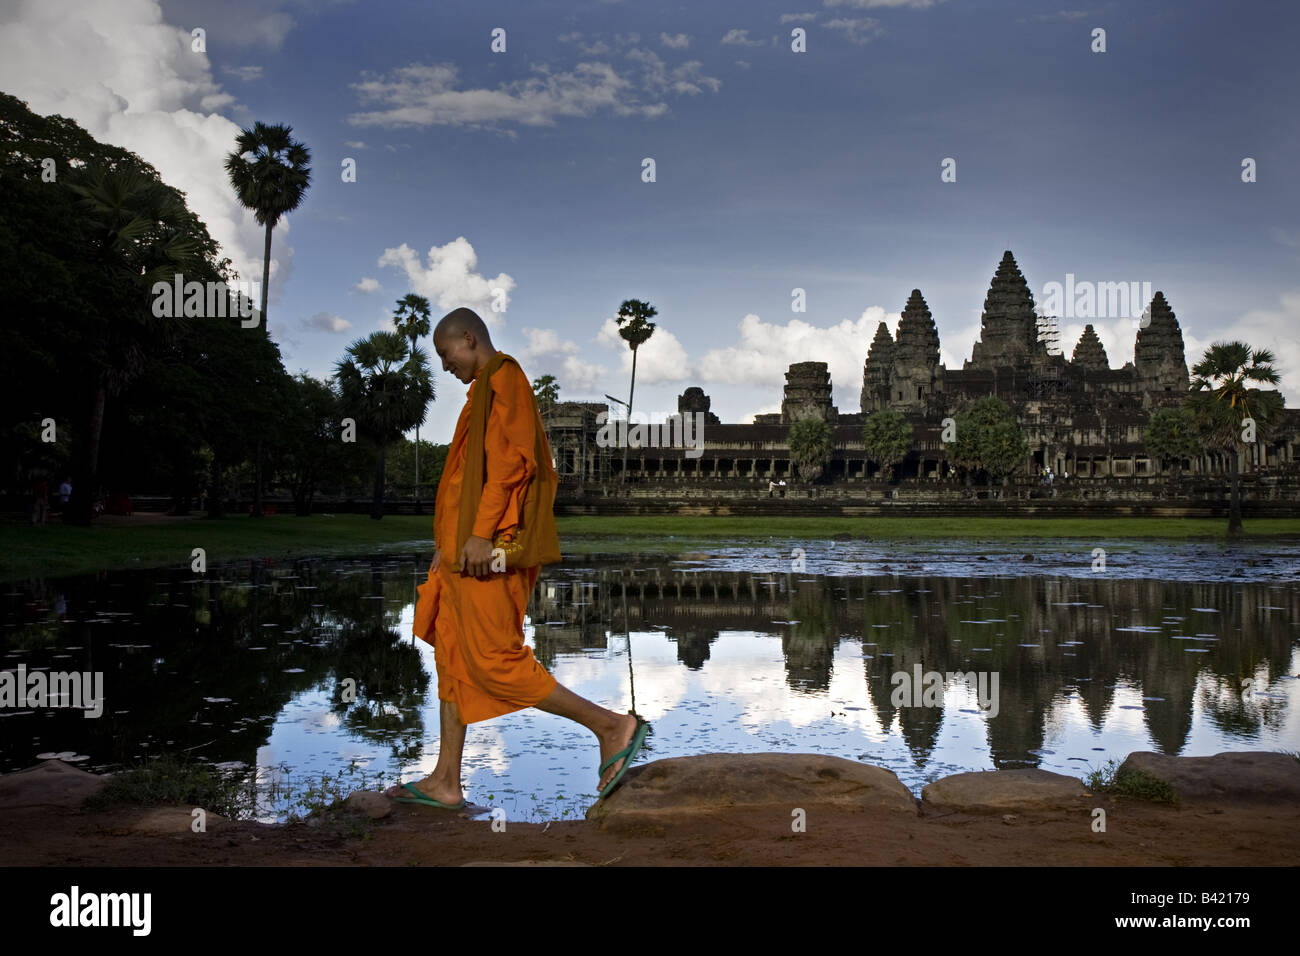 Monk in temple of Angkor wat Cambodia - Stock Image